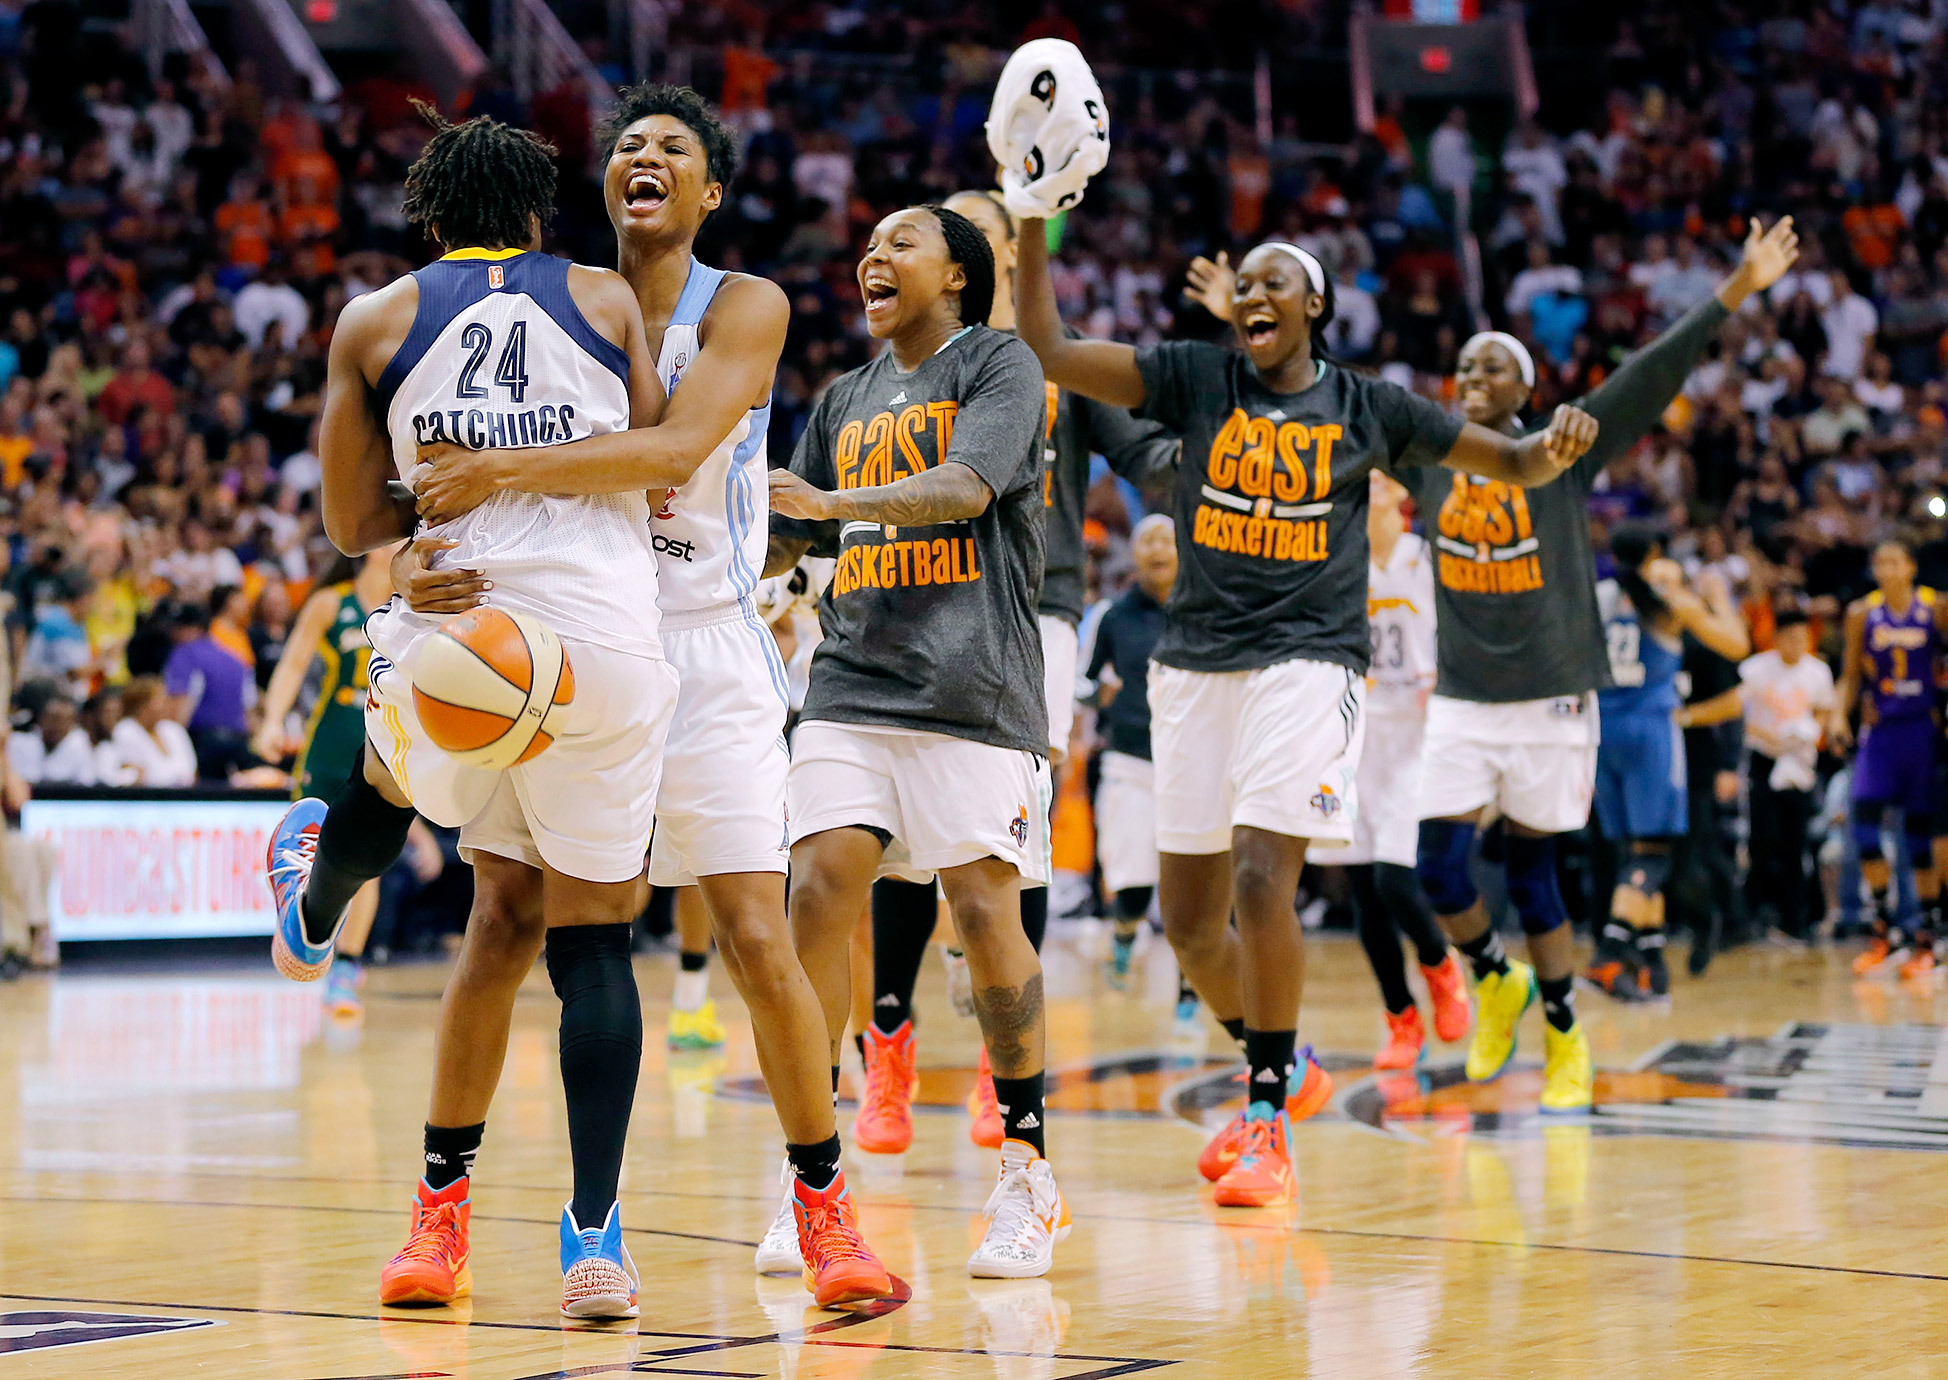 The East's Tamika Catchings of the Indiana Fever is embraced by teammates as time expires in overtime of the WNBA All-Star Game.